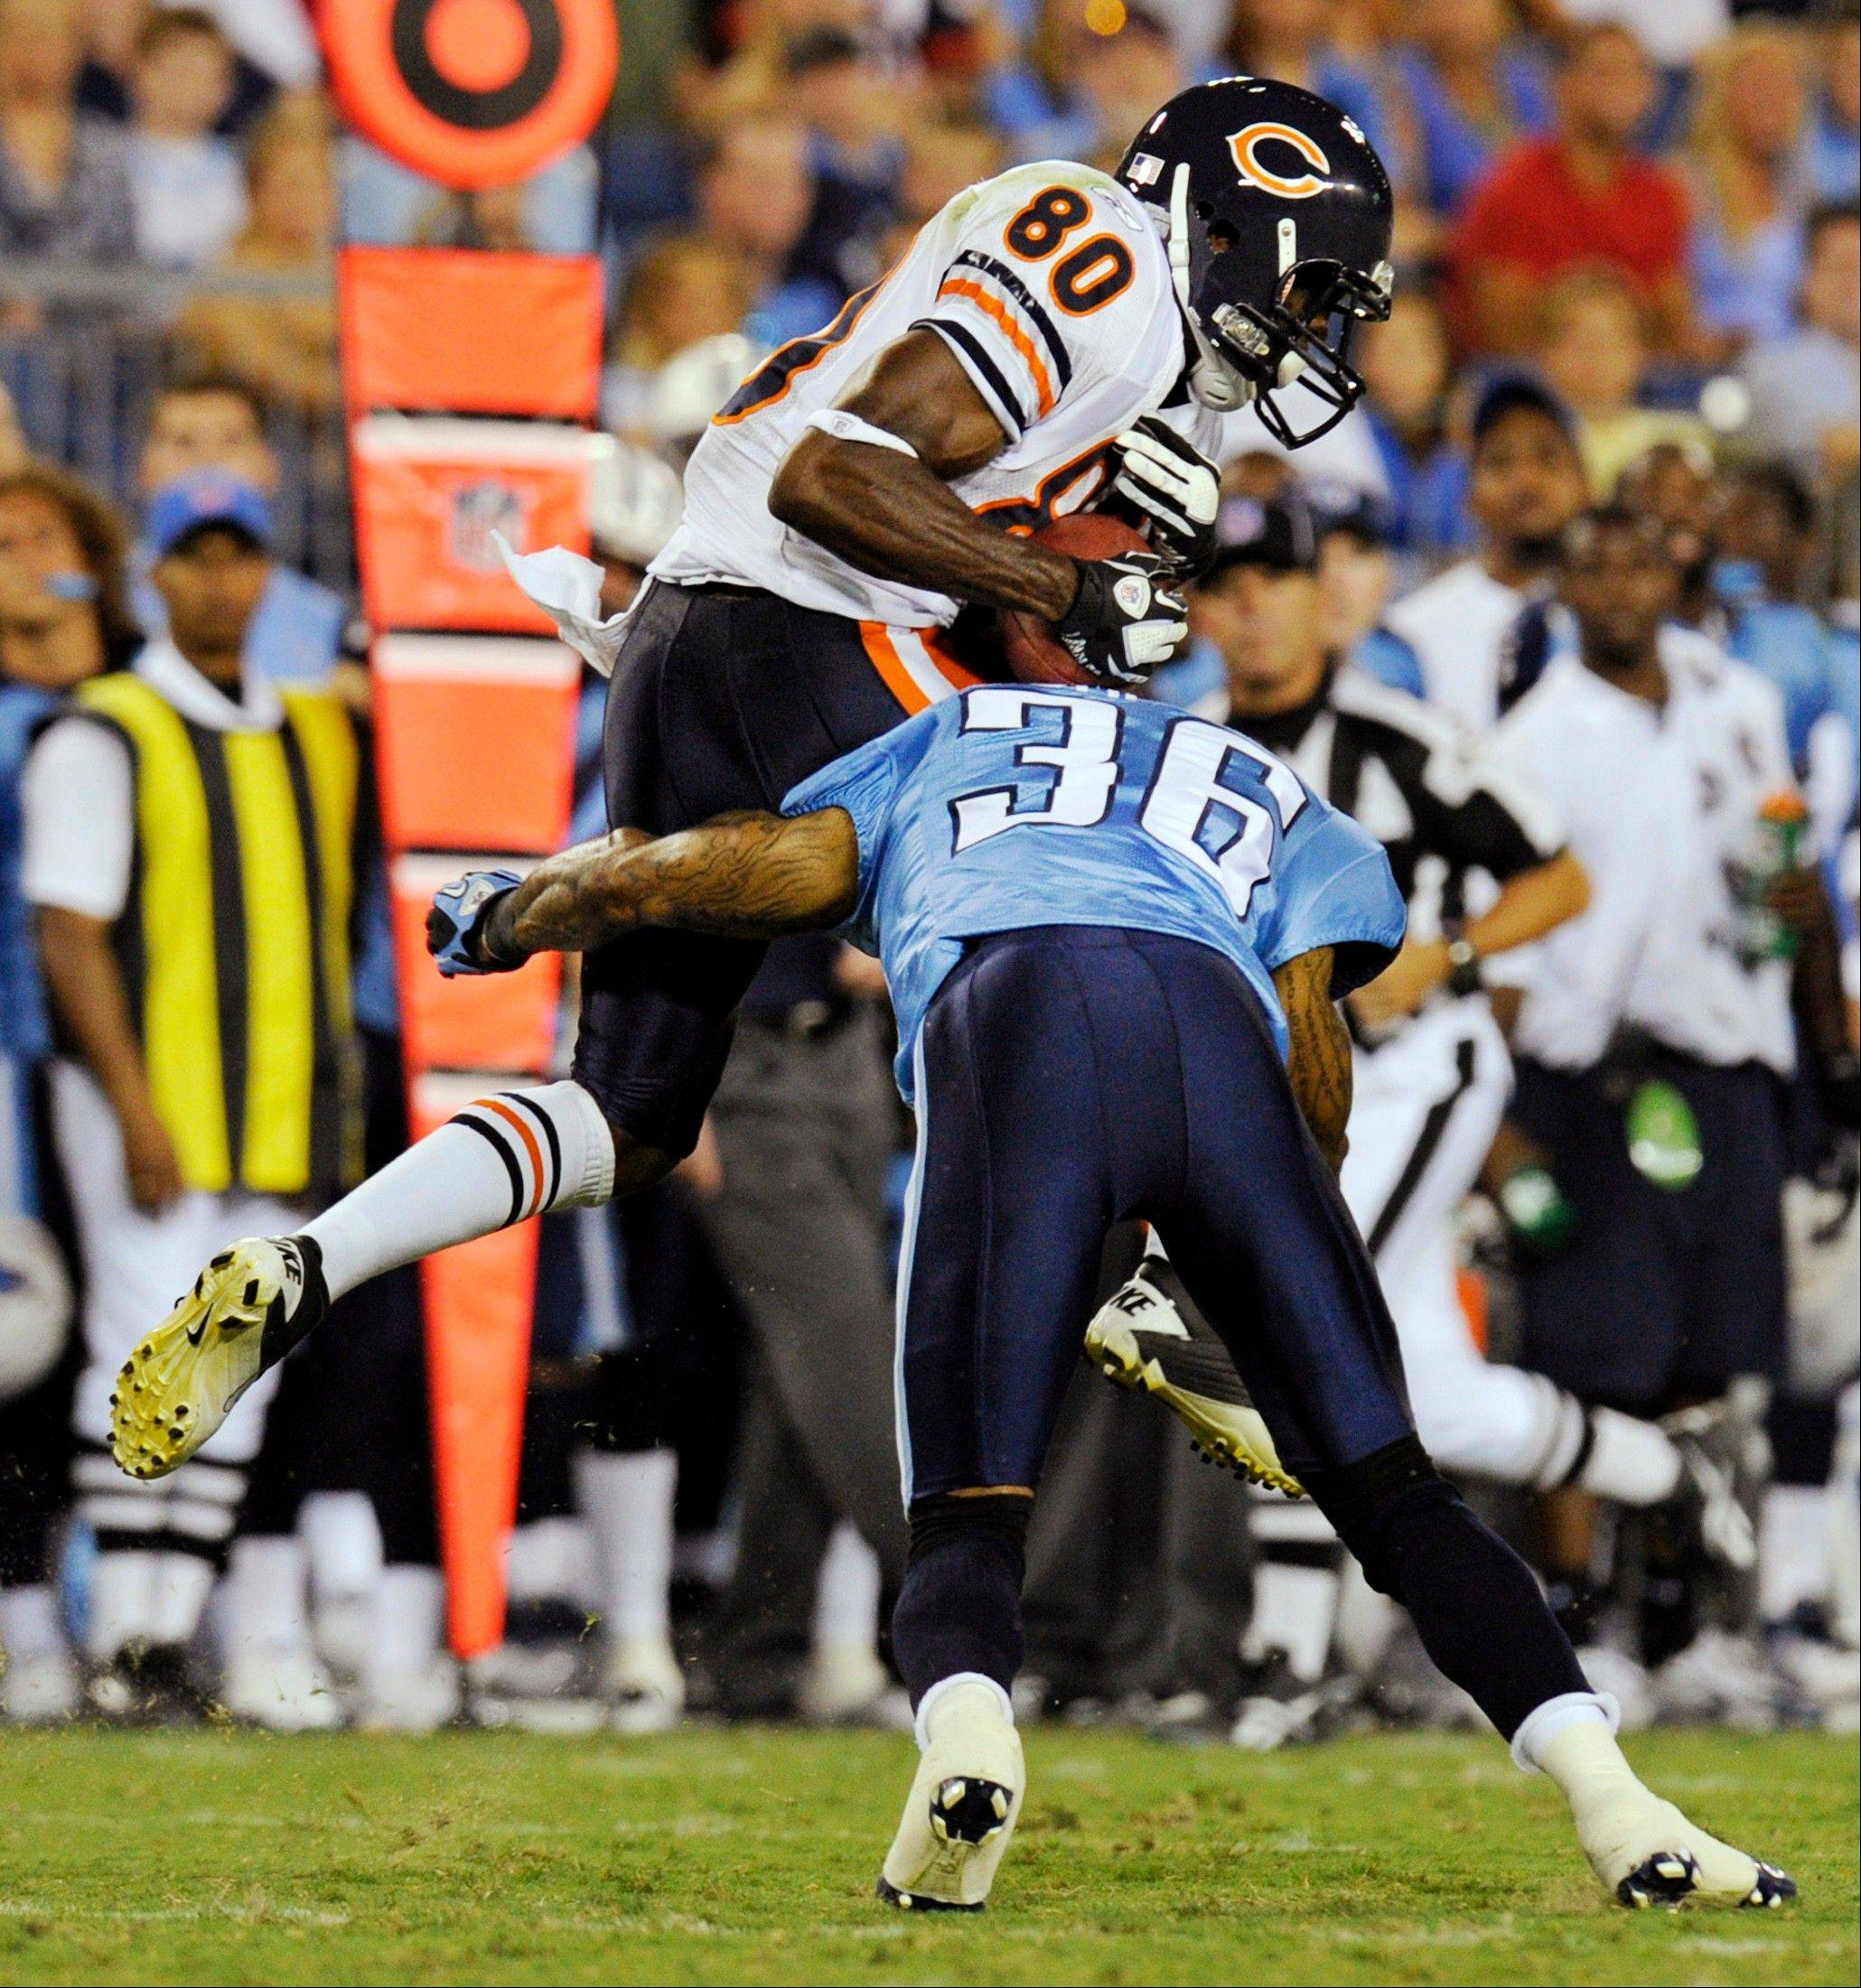 Bears wide receiver Earl Bennett makes a catch as he is hit by Tennessee Titans defensive back Anthony Smith in the third quarter Saturday.